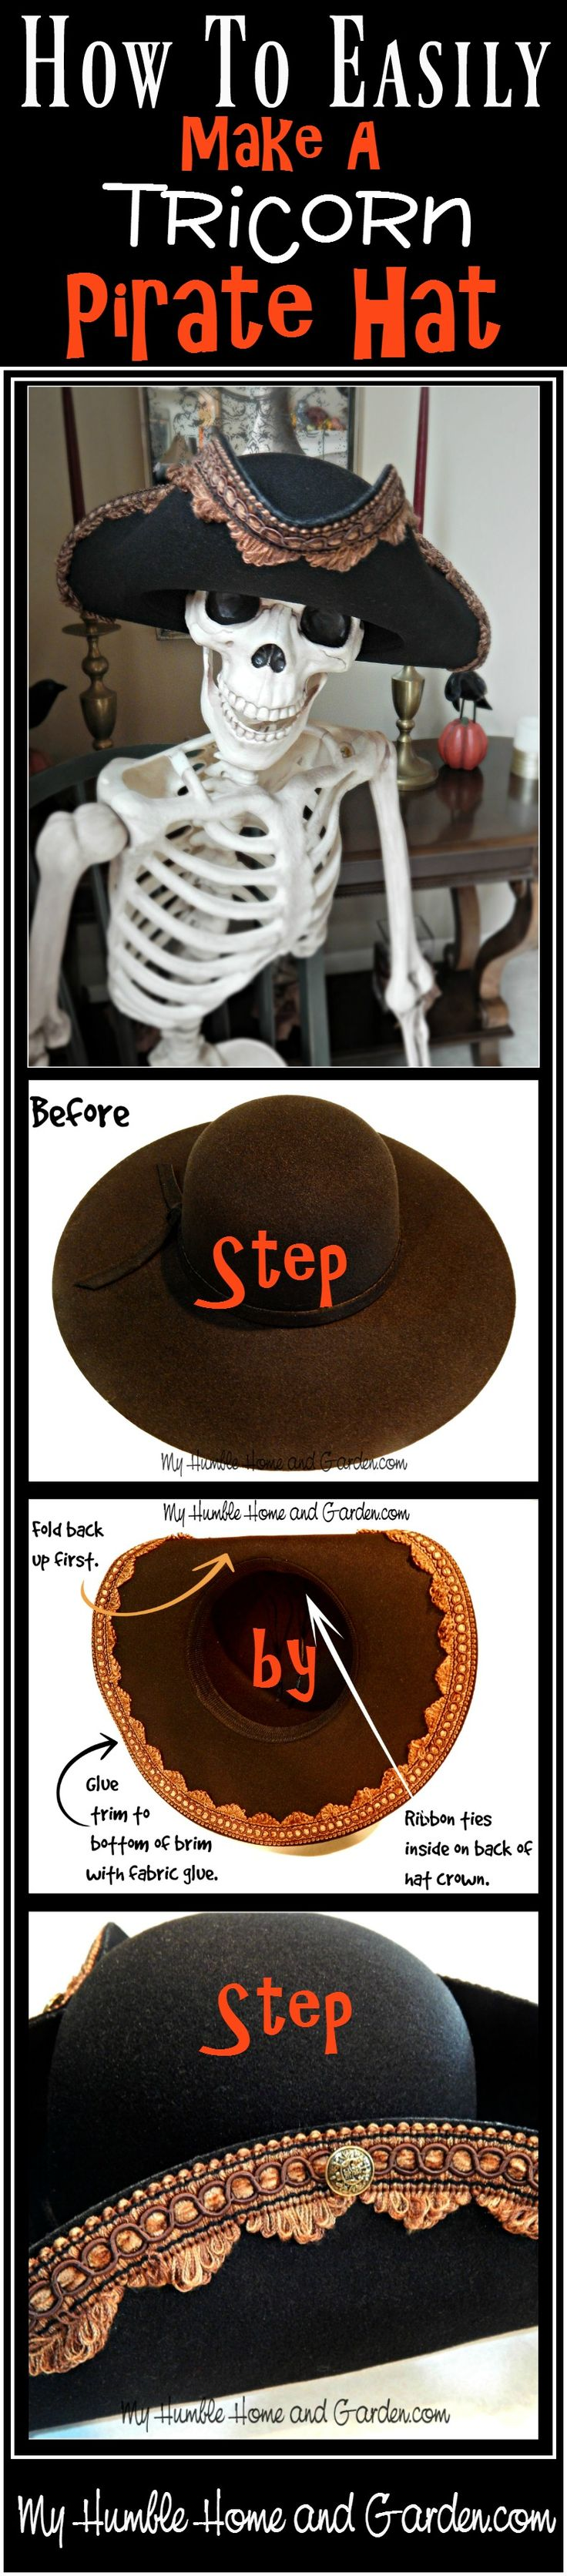 How To Easily Make A Tricorn Pirate Hat! on MyHumbleHomeandGarden.com